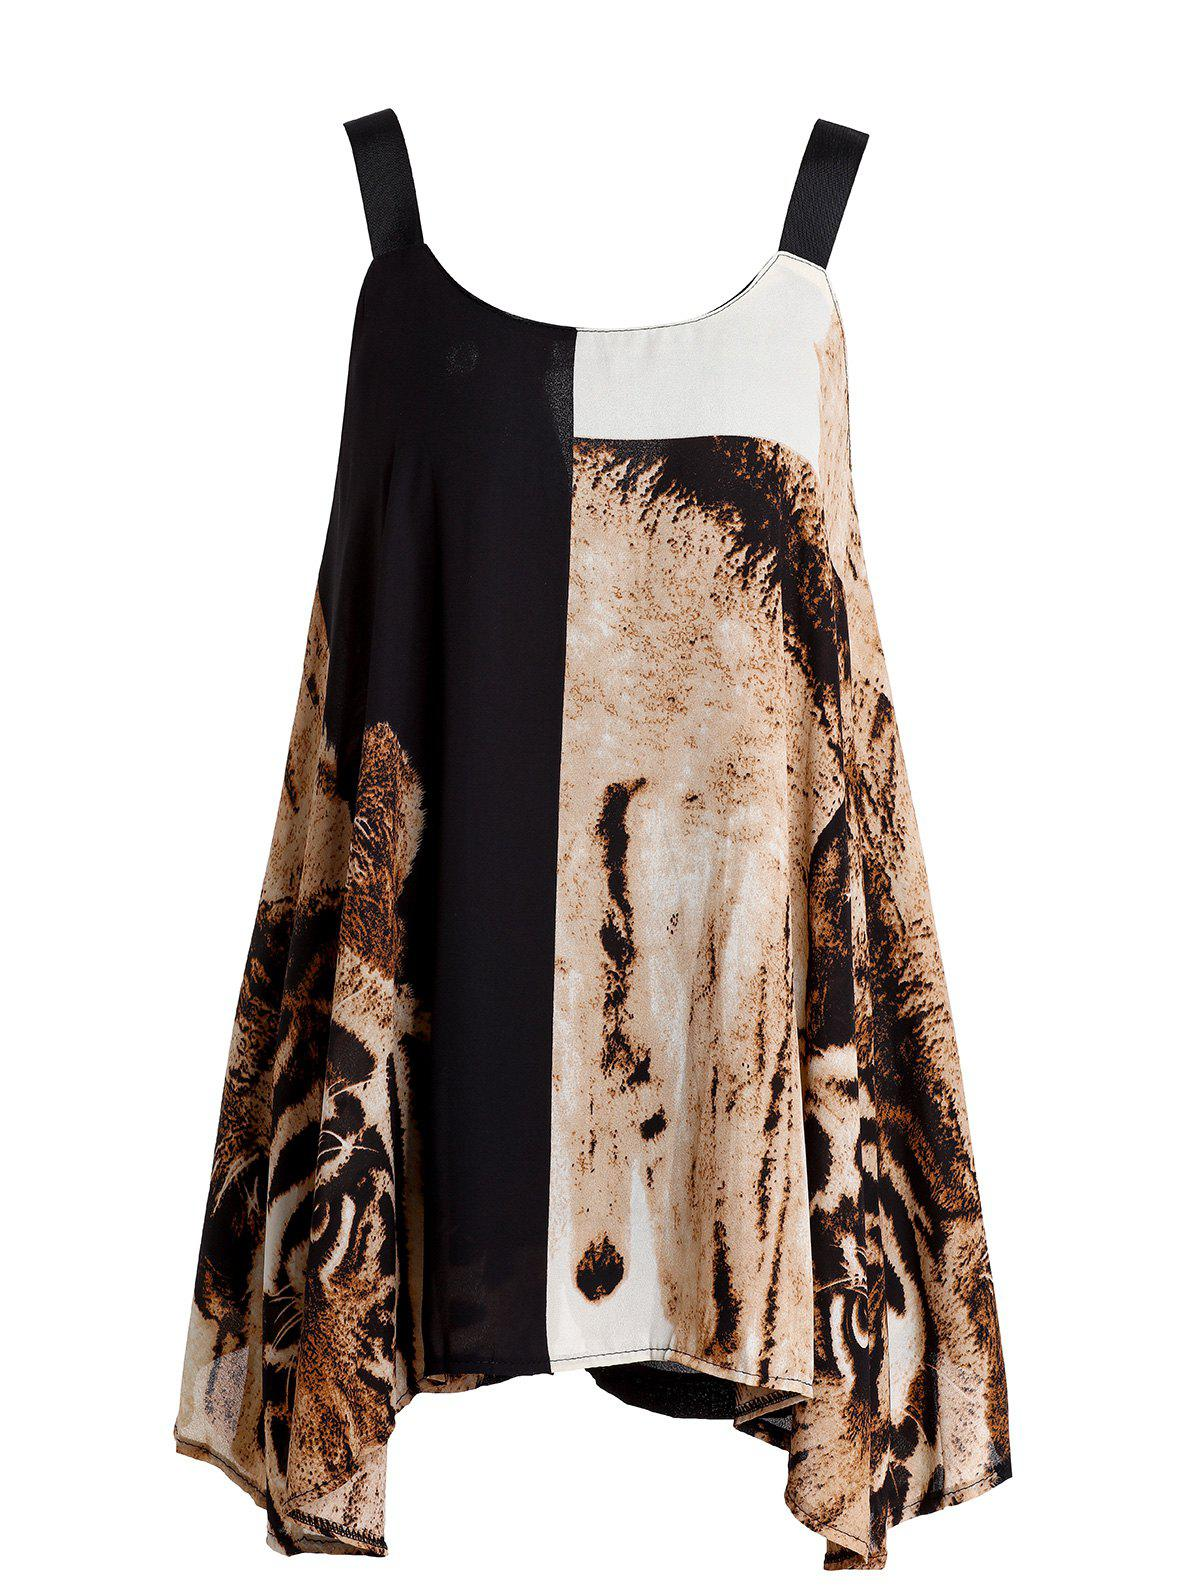 Stylish Women's Color Block Tiger Printed Asymmetric Top + Shorts Twinset